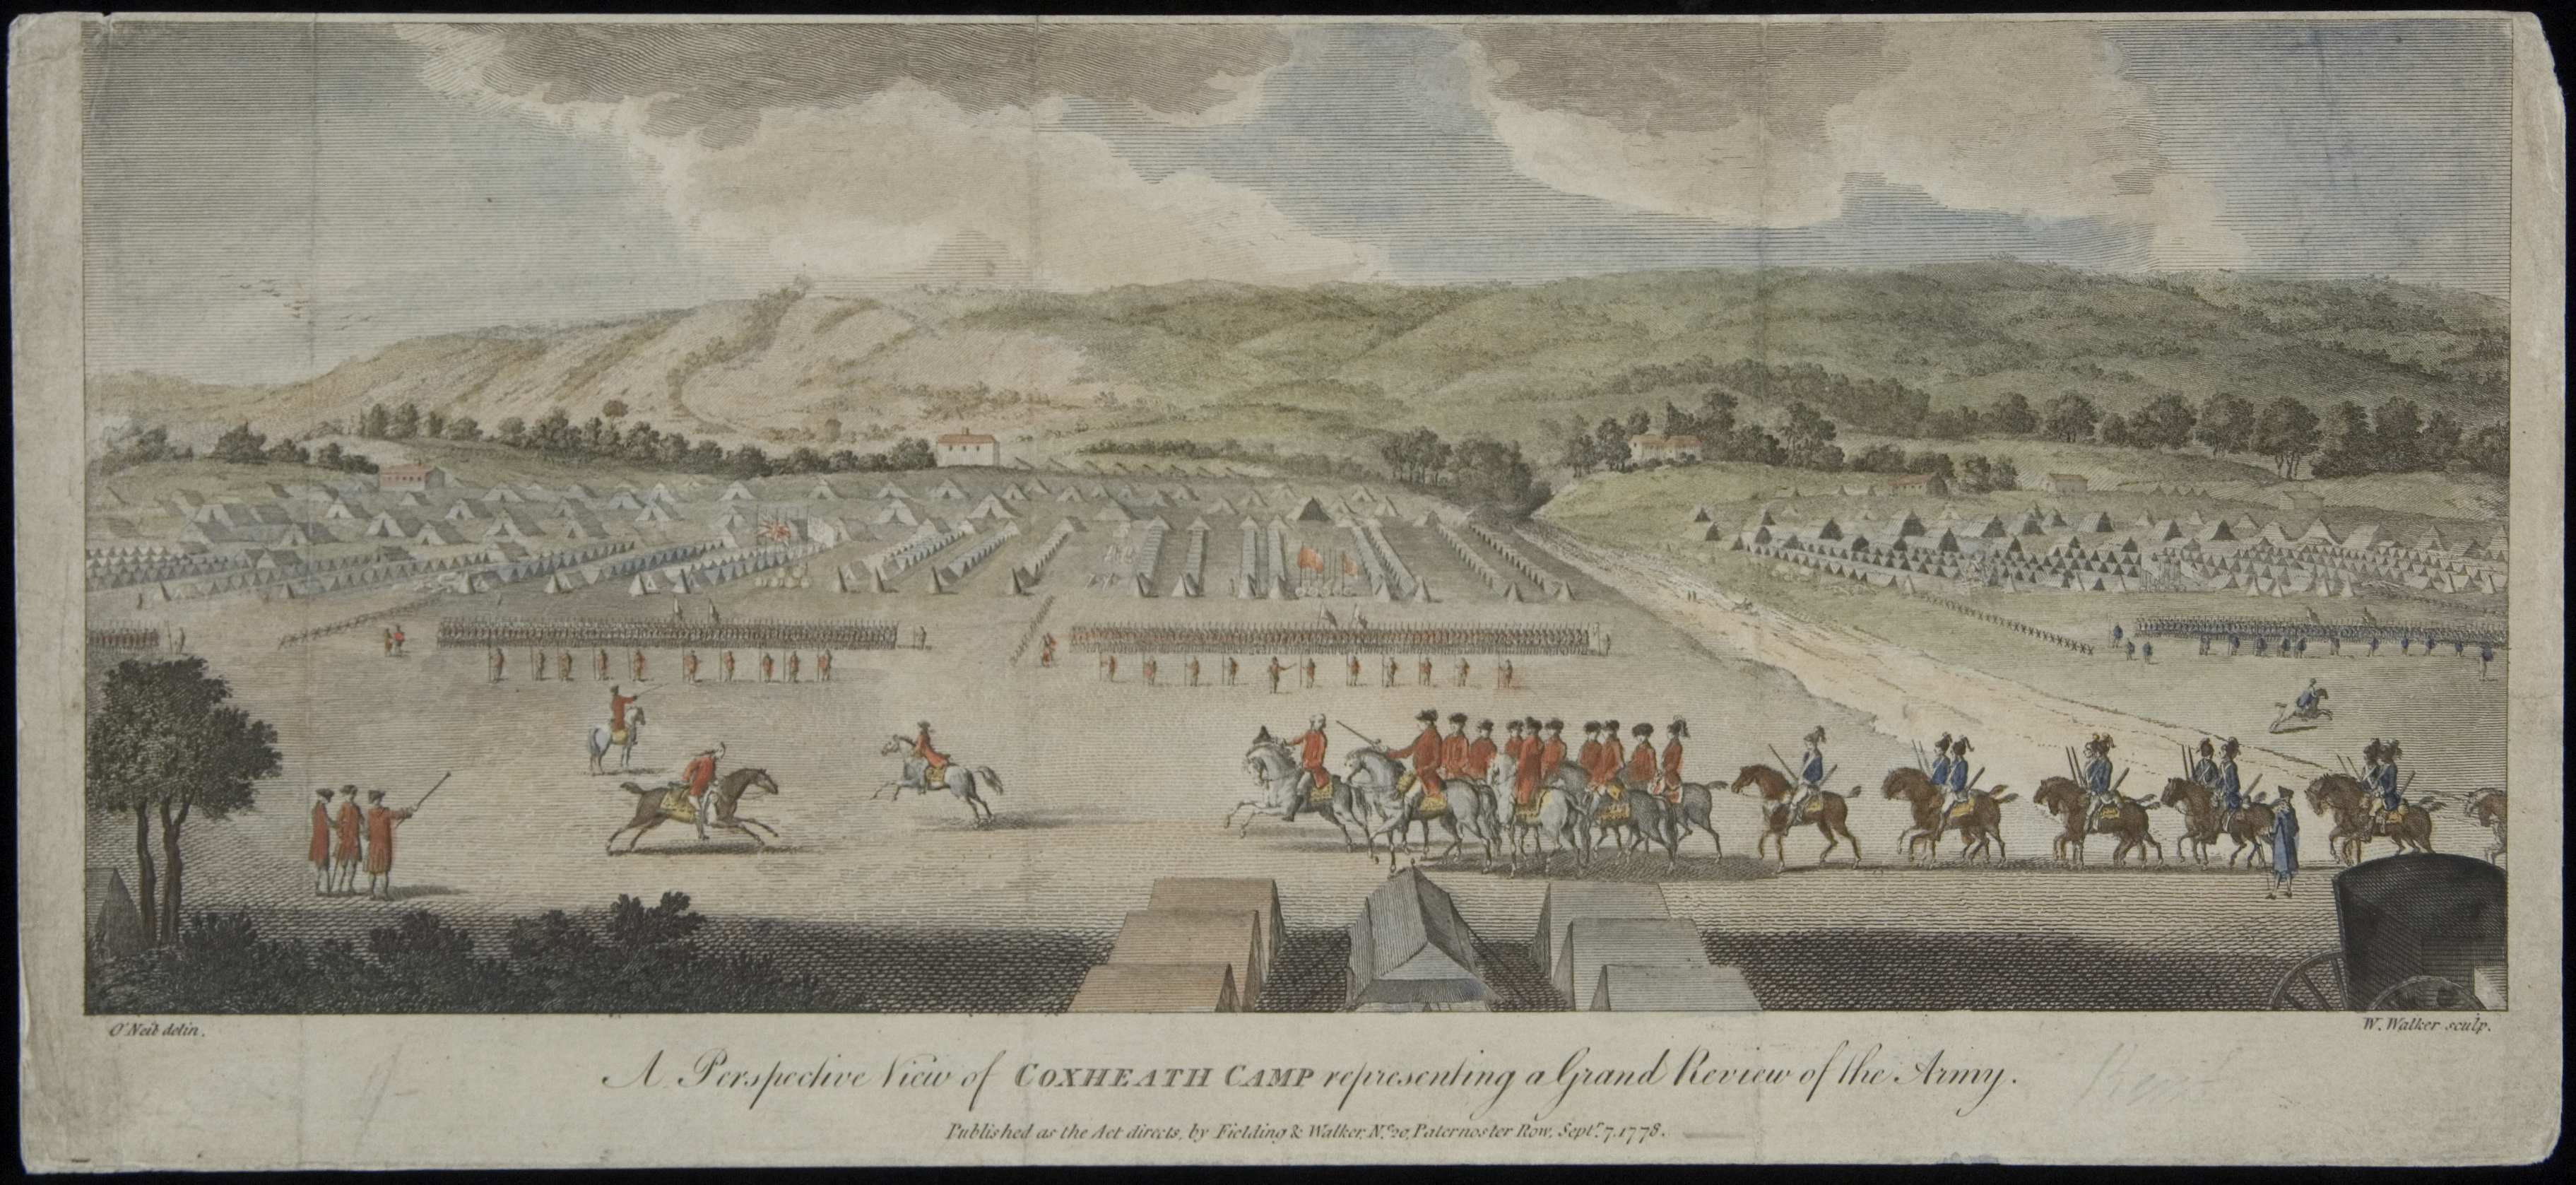 A Perspective View of Coxheath Camp representing a Grand Review of the Army, William Walker, engraver; after O'Neil, artist, London: Published by Fielding & Walker, 1778